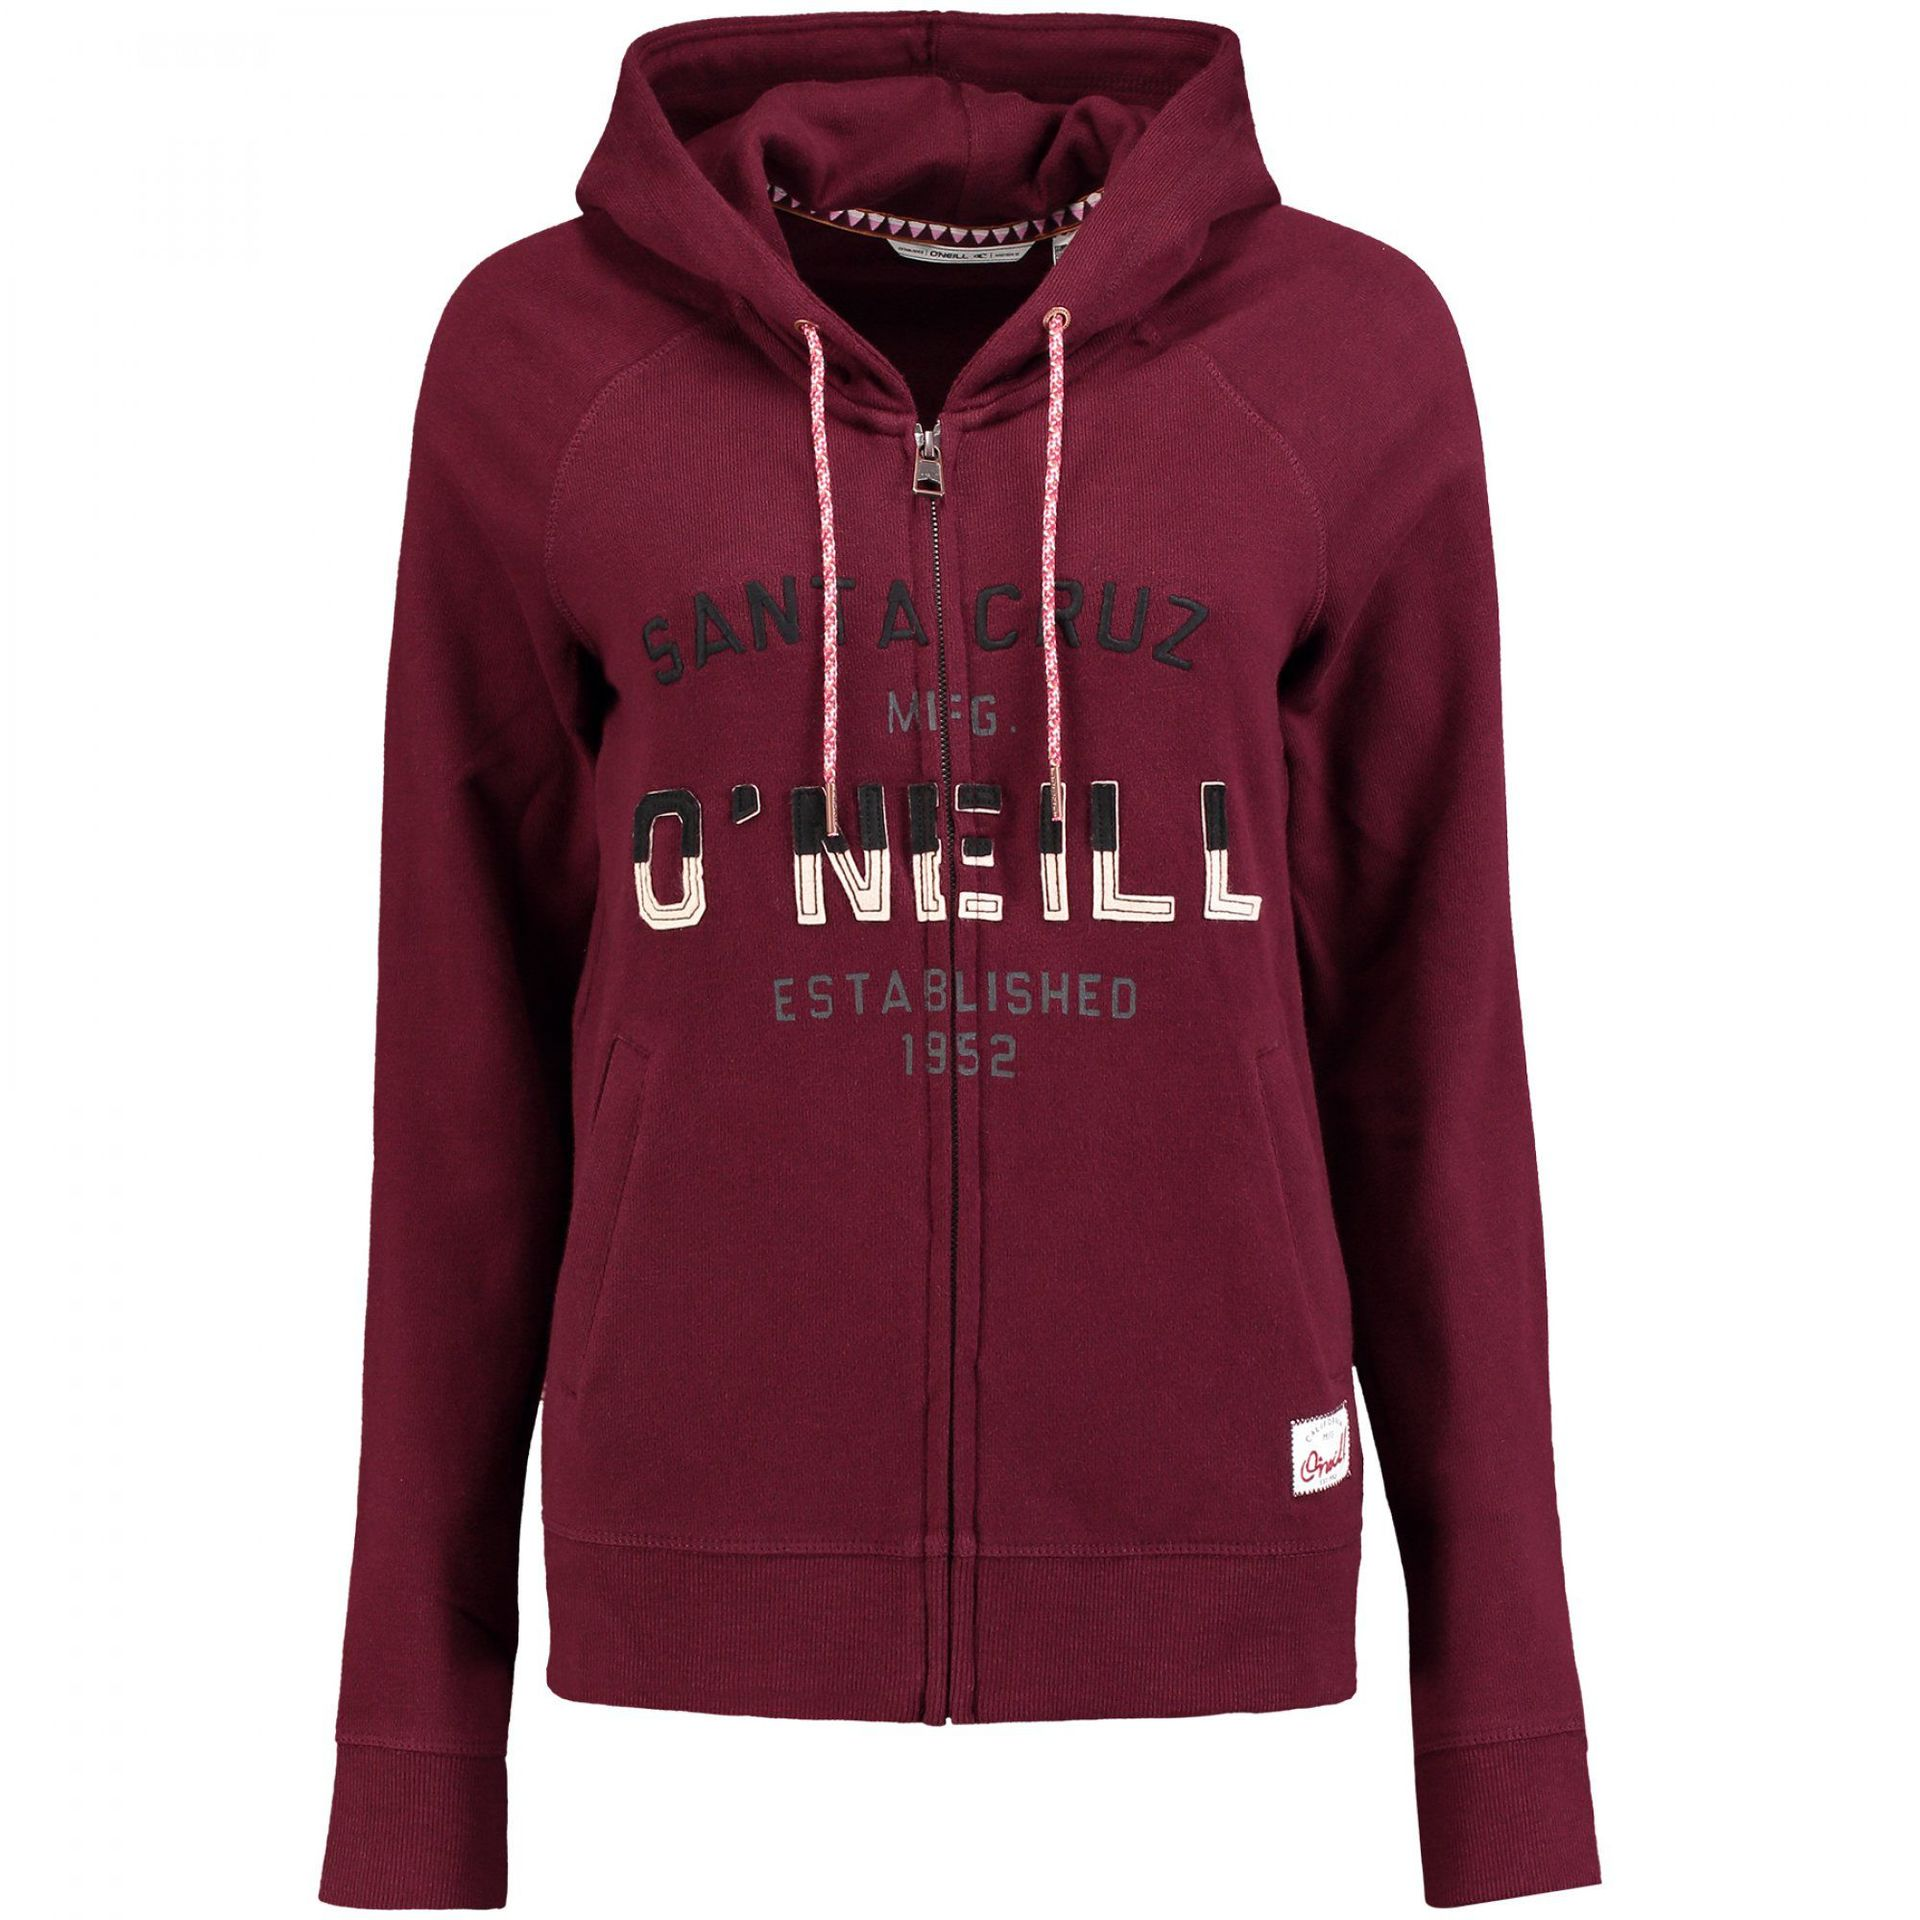 BLUZA ONEILL  EASY FANTASTIC SWEATSHIRT FIG RED